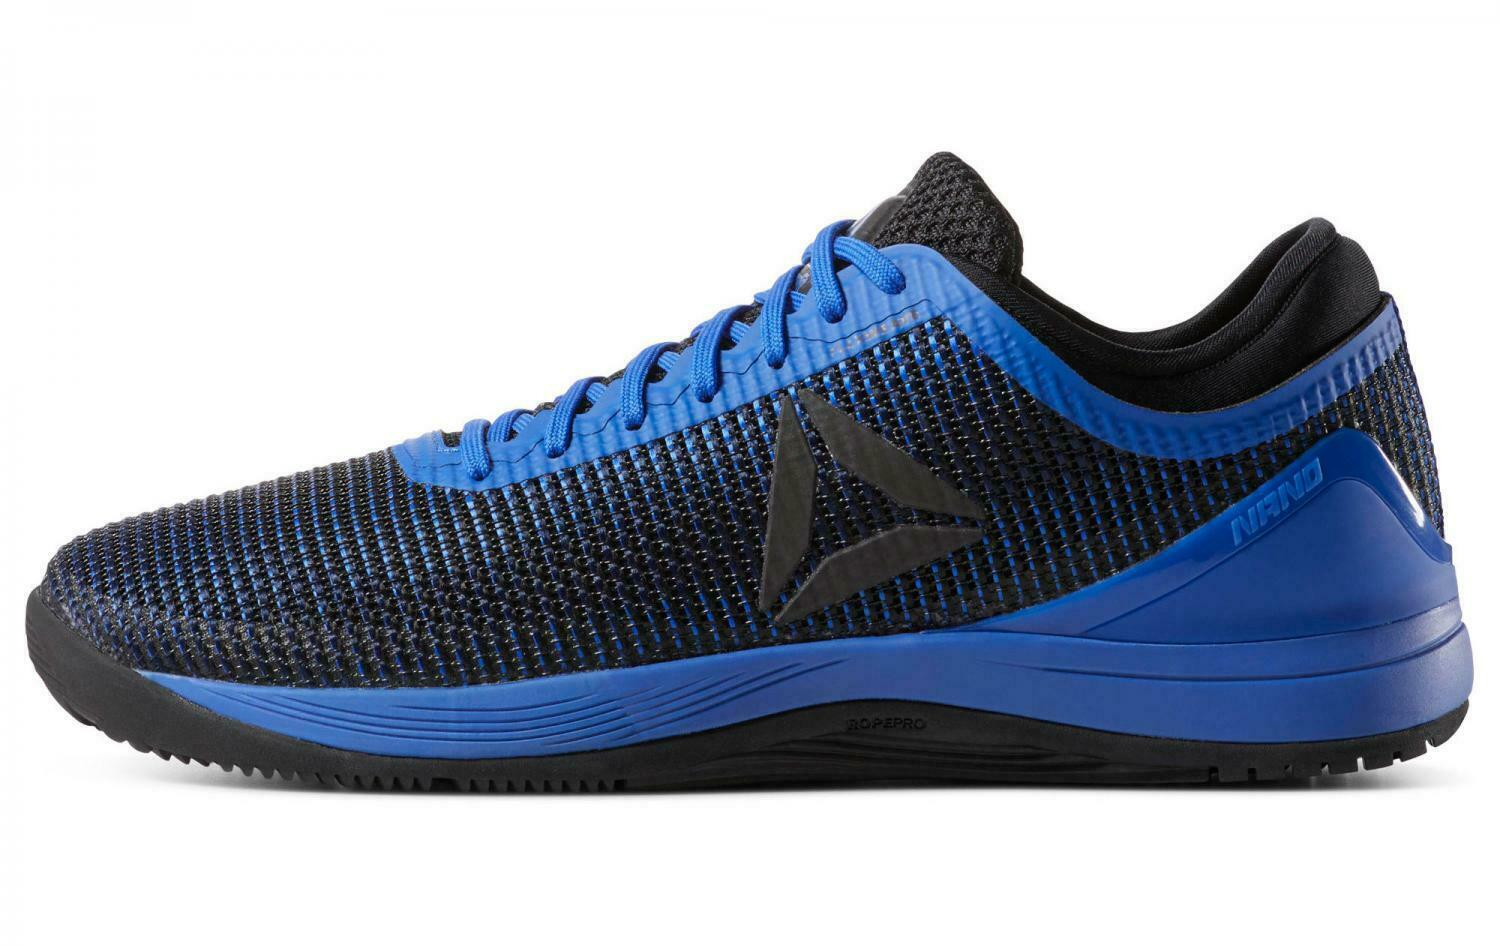 NEW MENS REEBOK CROSSFIT NANO 8.0 FLEXWEAVE TRAINING SHOES - IN STOCK